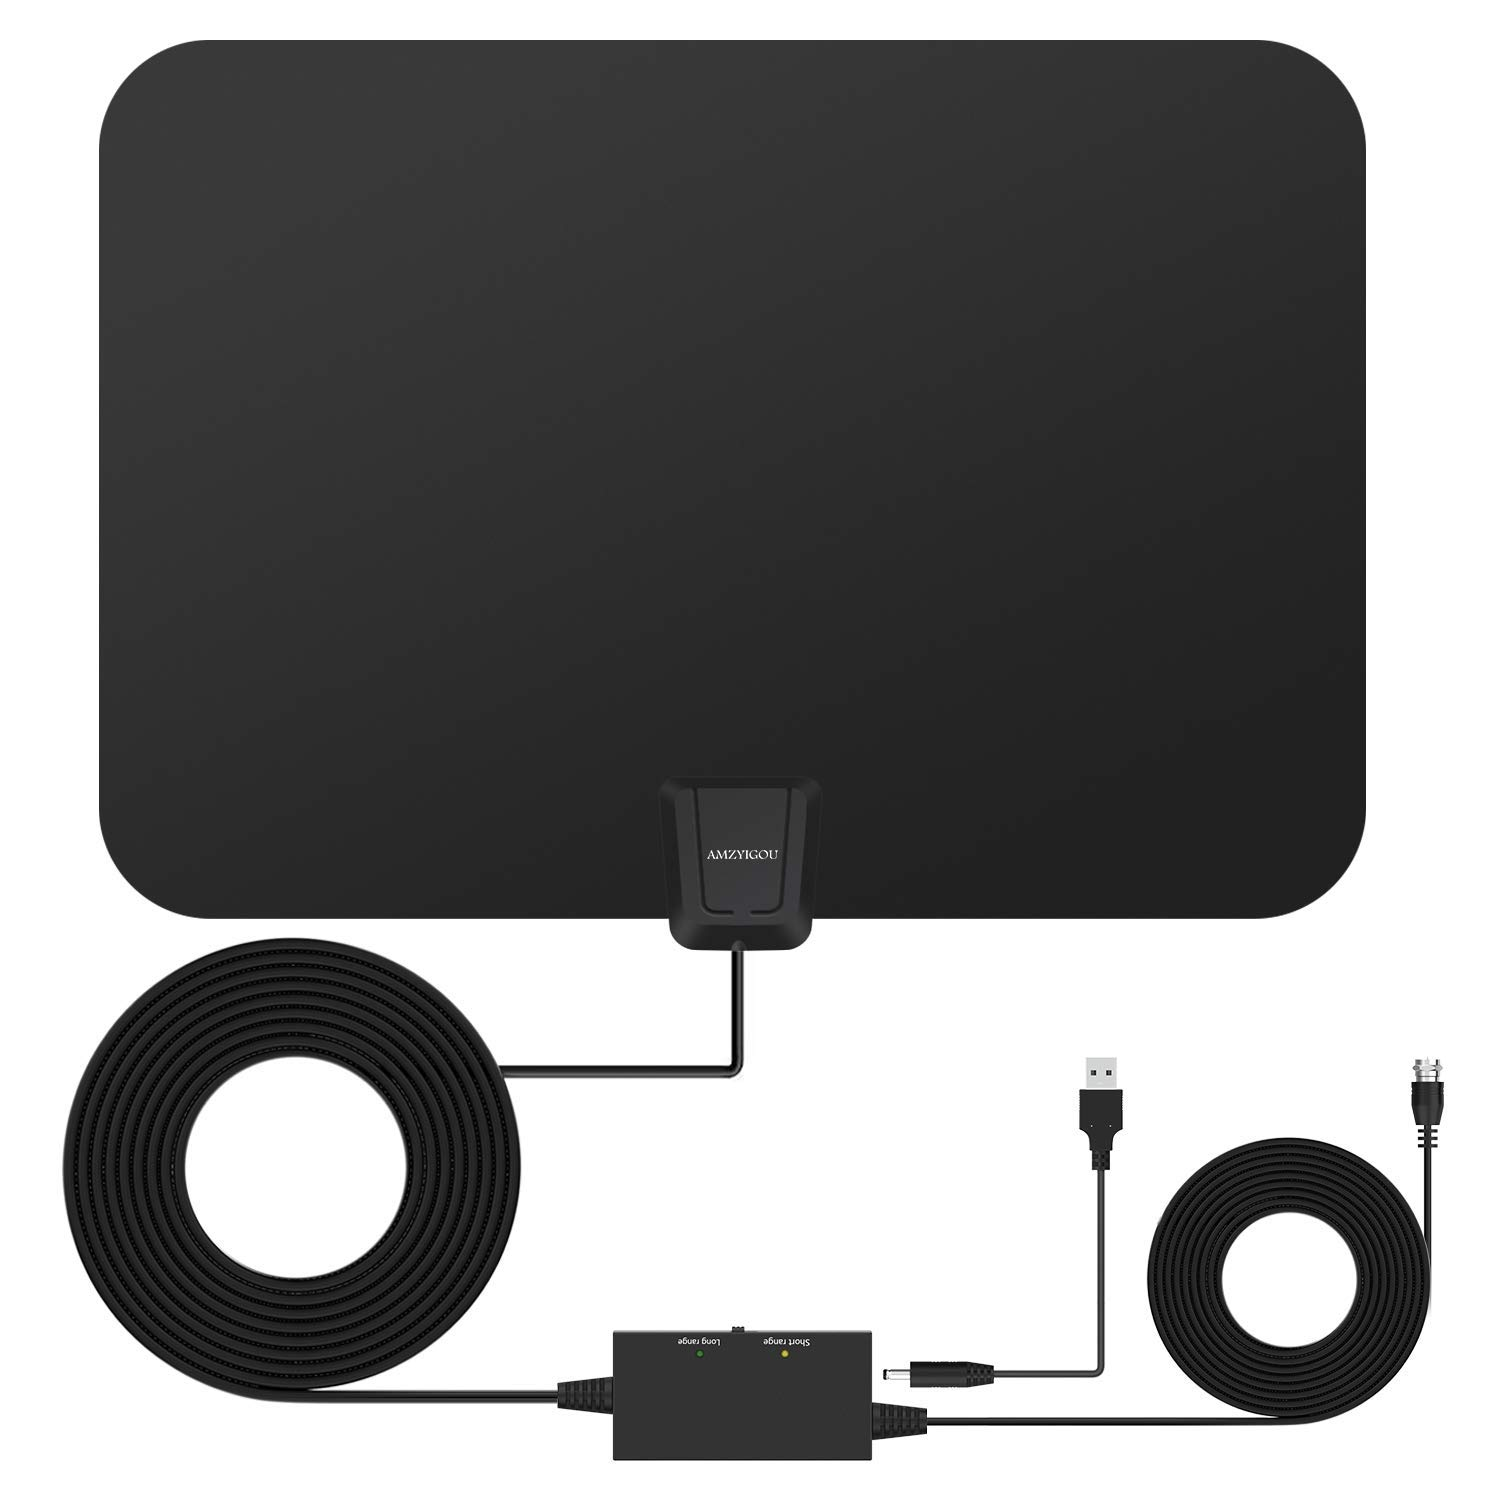 [2018 Newest Version] Amzyigou TV Antenna with 65-80 Miles Long Range, Digital Antenna Support 1080P 4K, Indoor HD Antenna with Amplifier for Free TV Channels